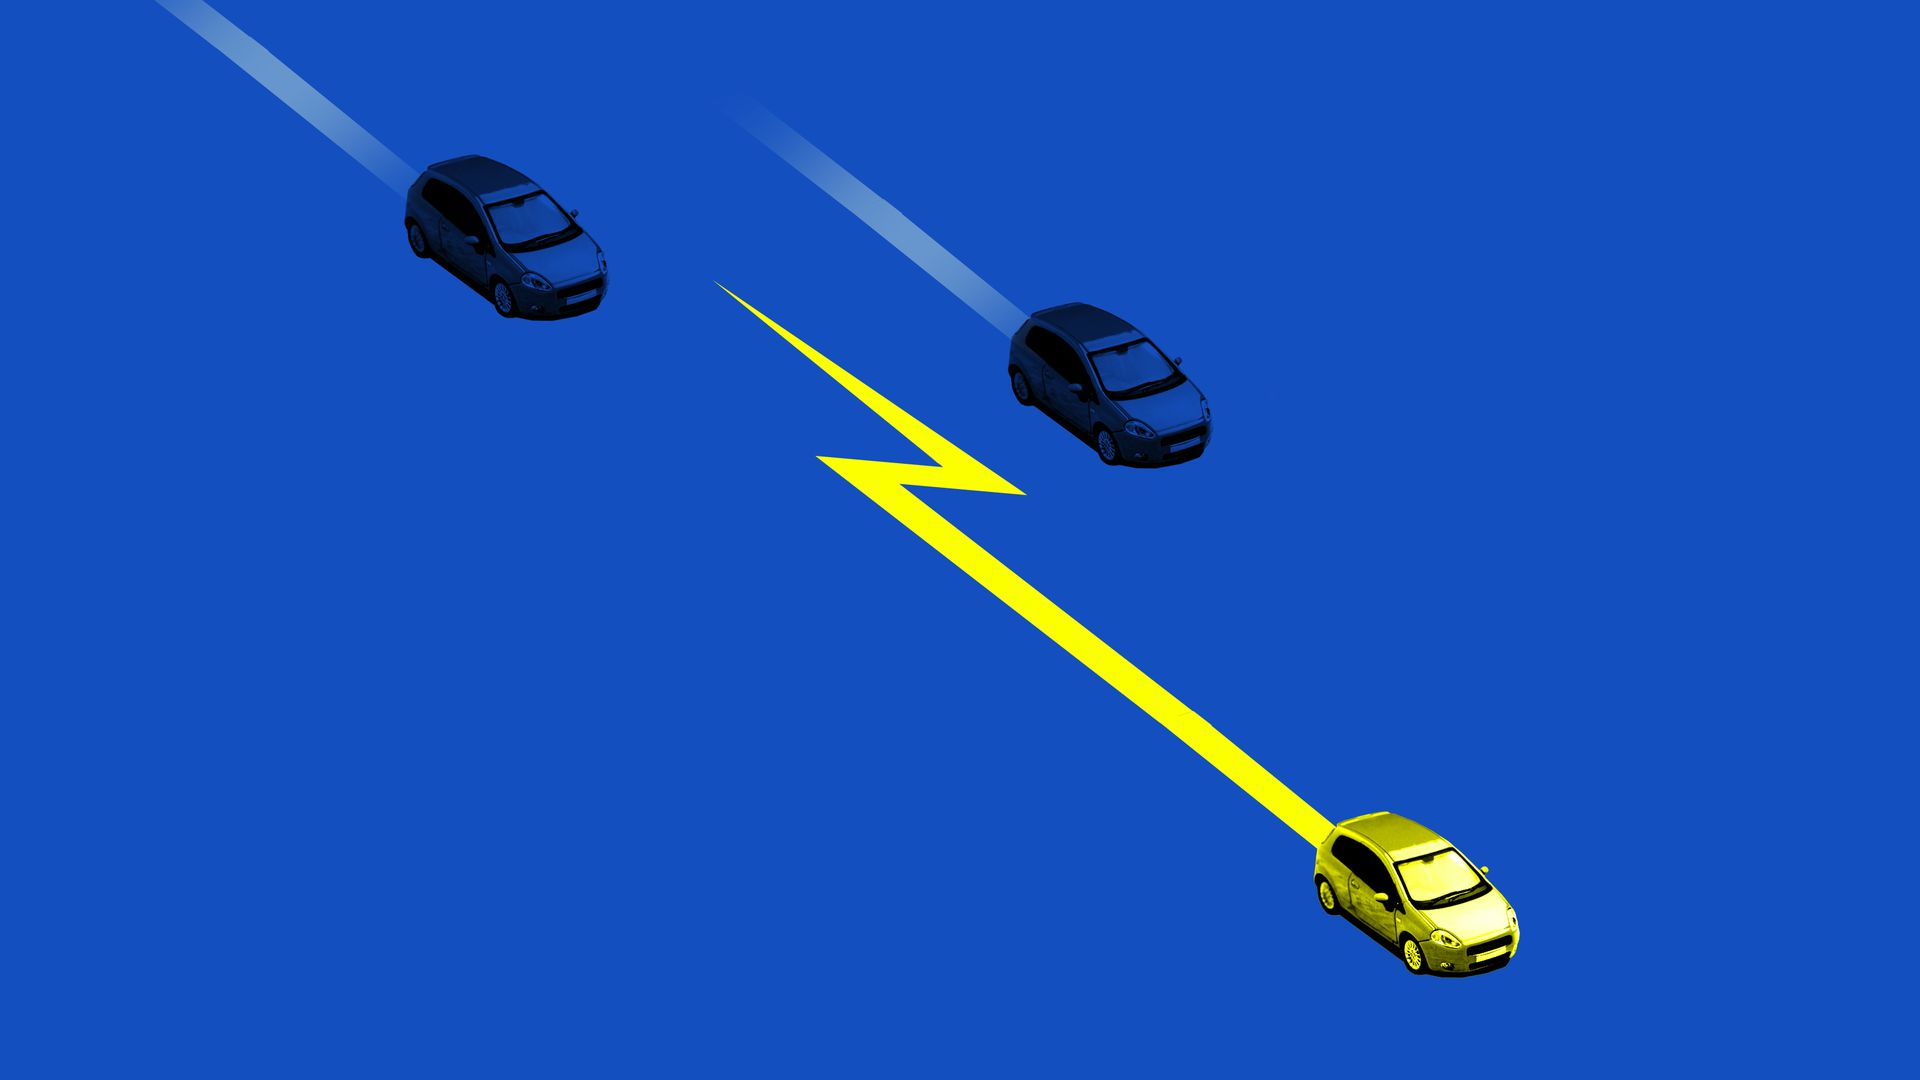 Illustration of an electric car with thunderbolt behind it outpacing other cars